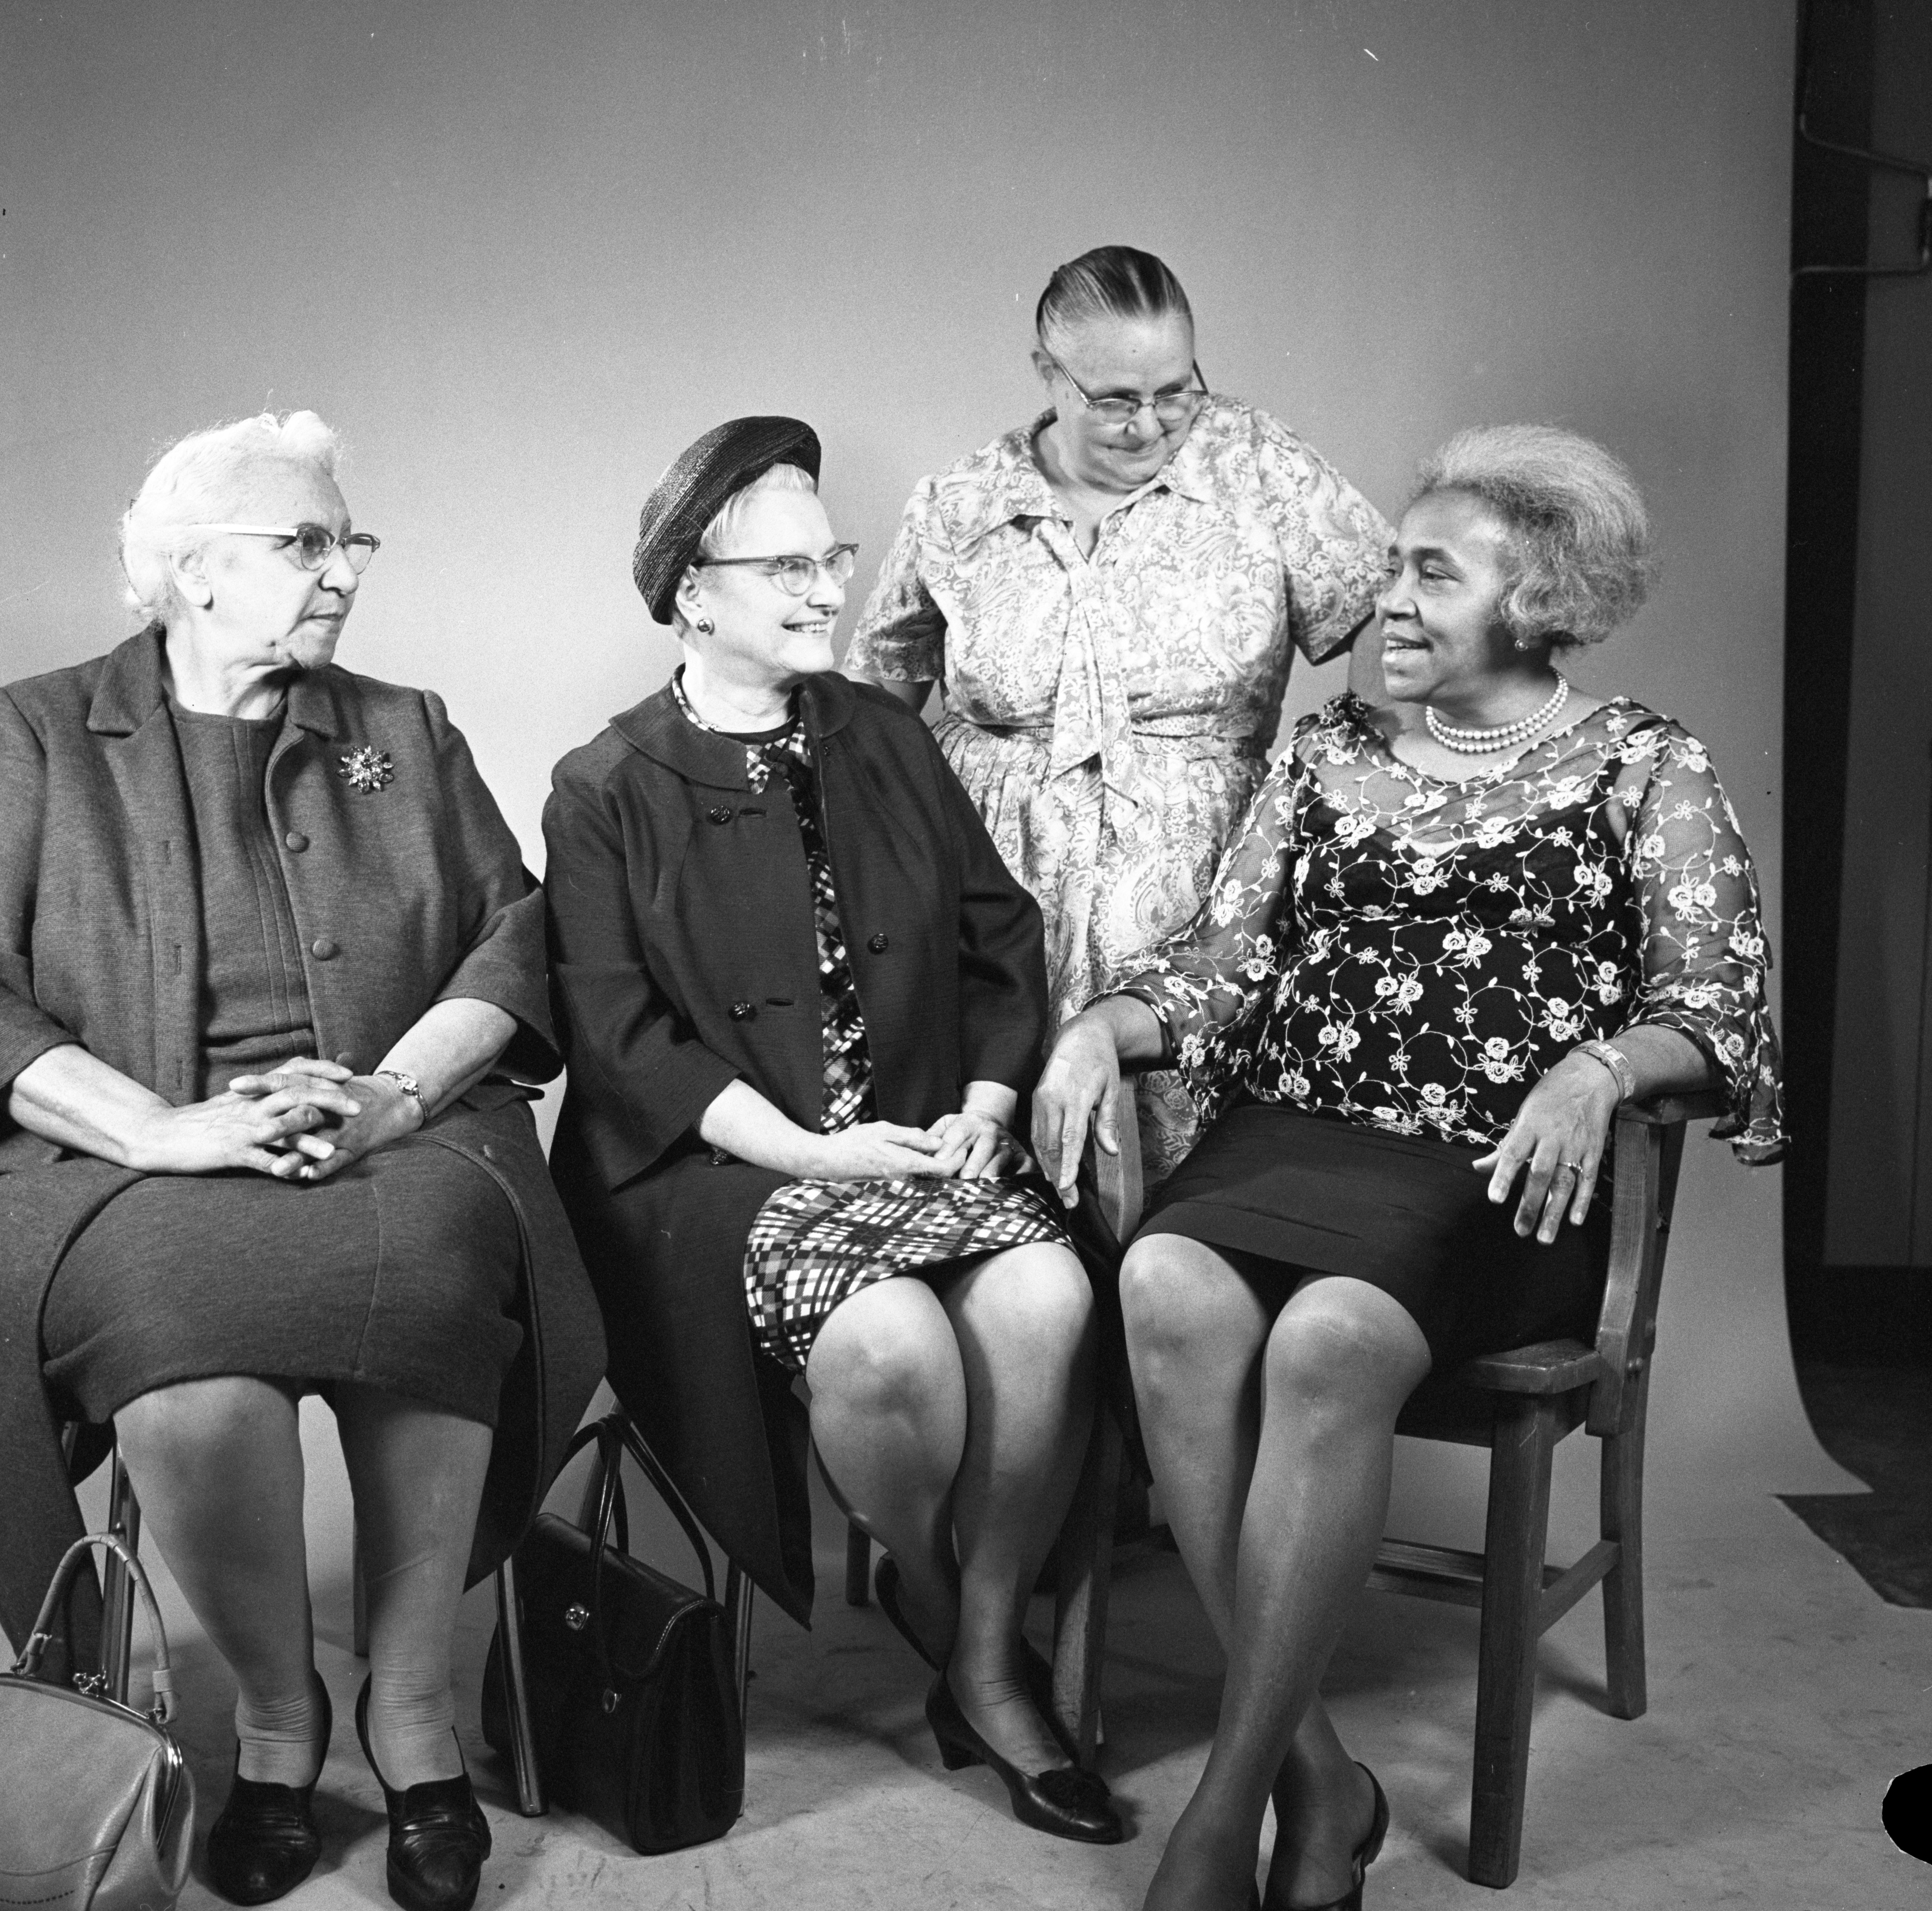 Grandmothers Discuss Motherhood For Mother's Day, May 1971 image